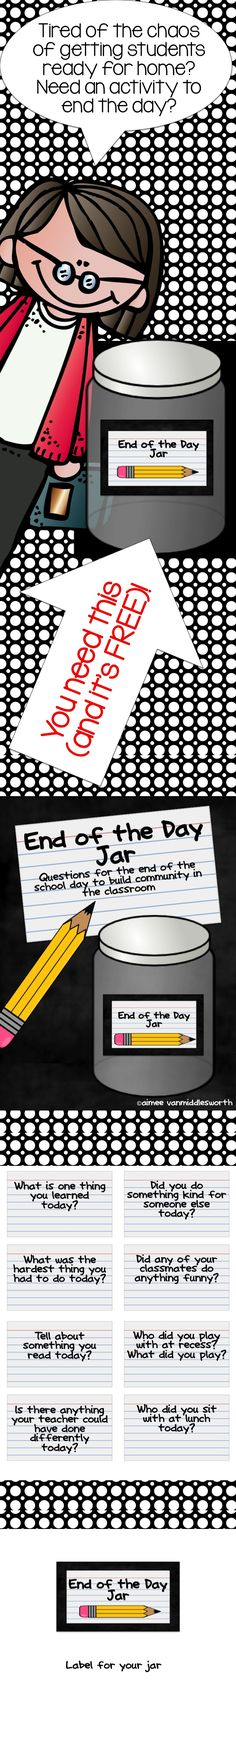 The End of the Day Jar is a great way to end the school day and wonderful for classroom management